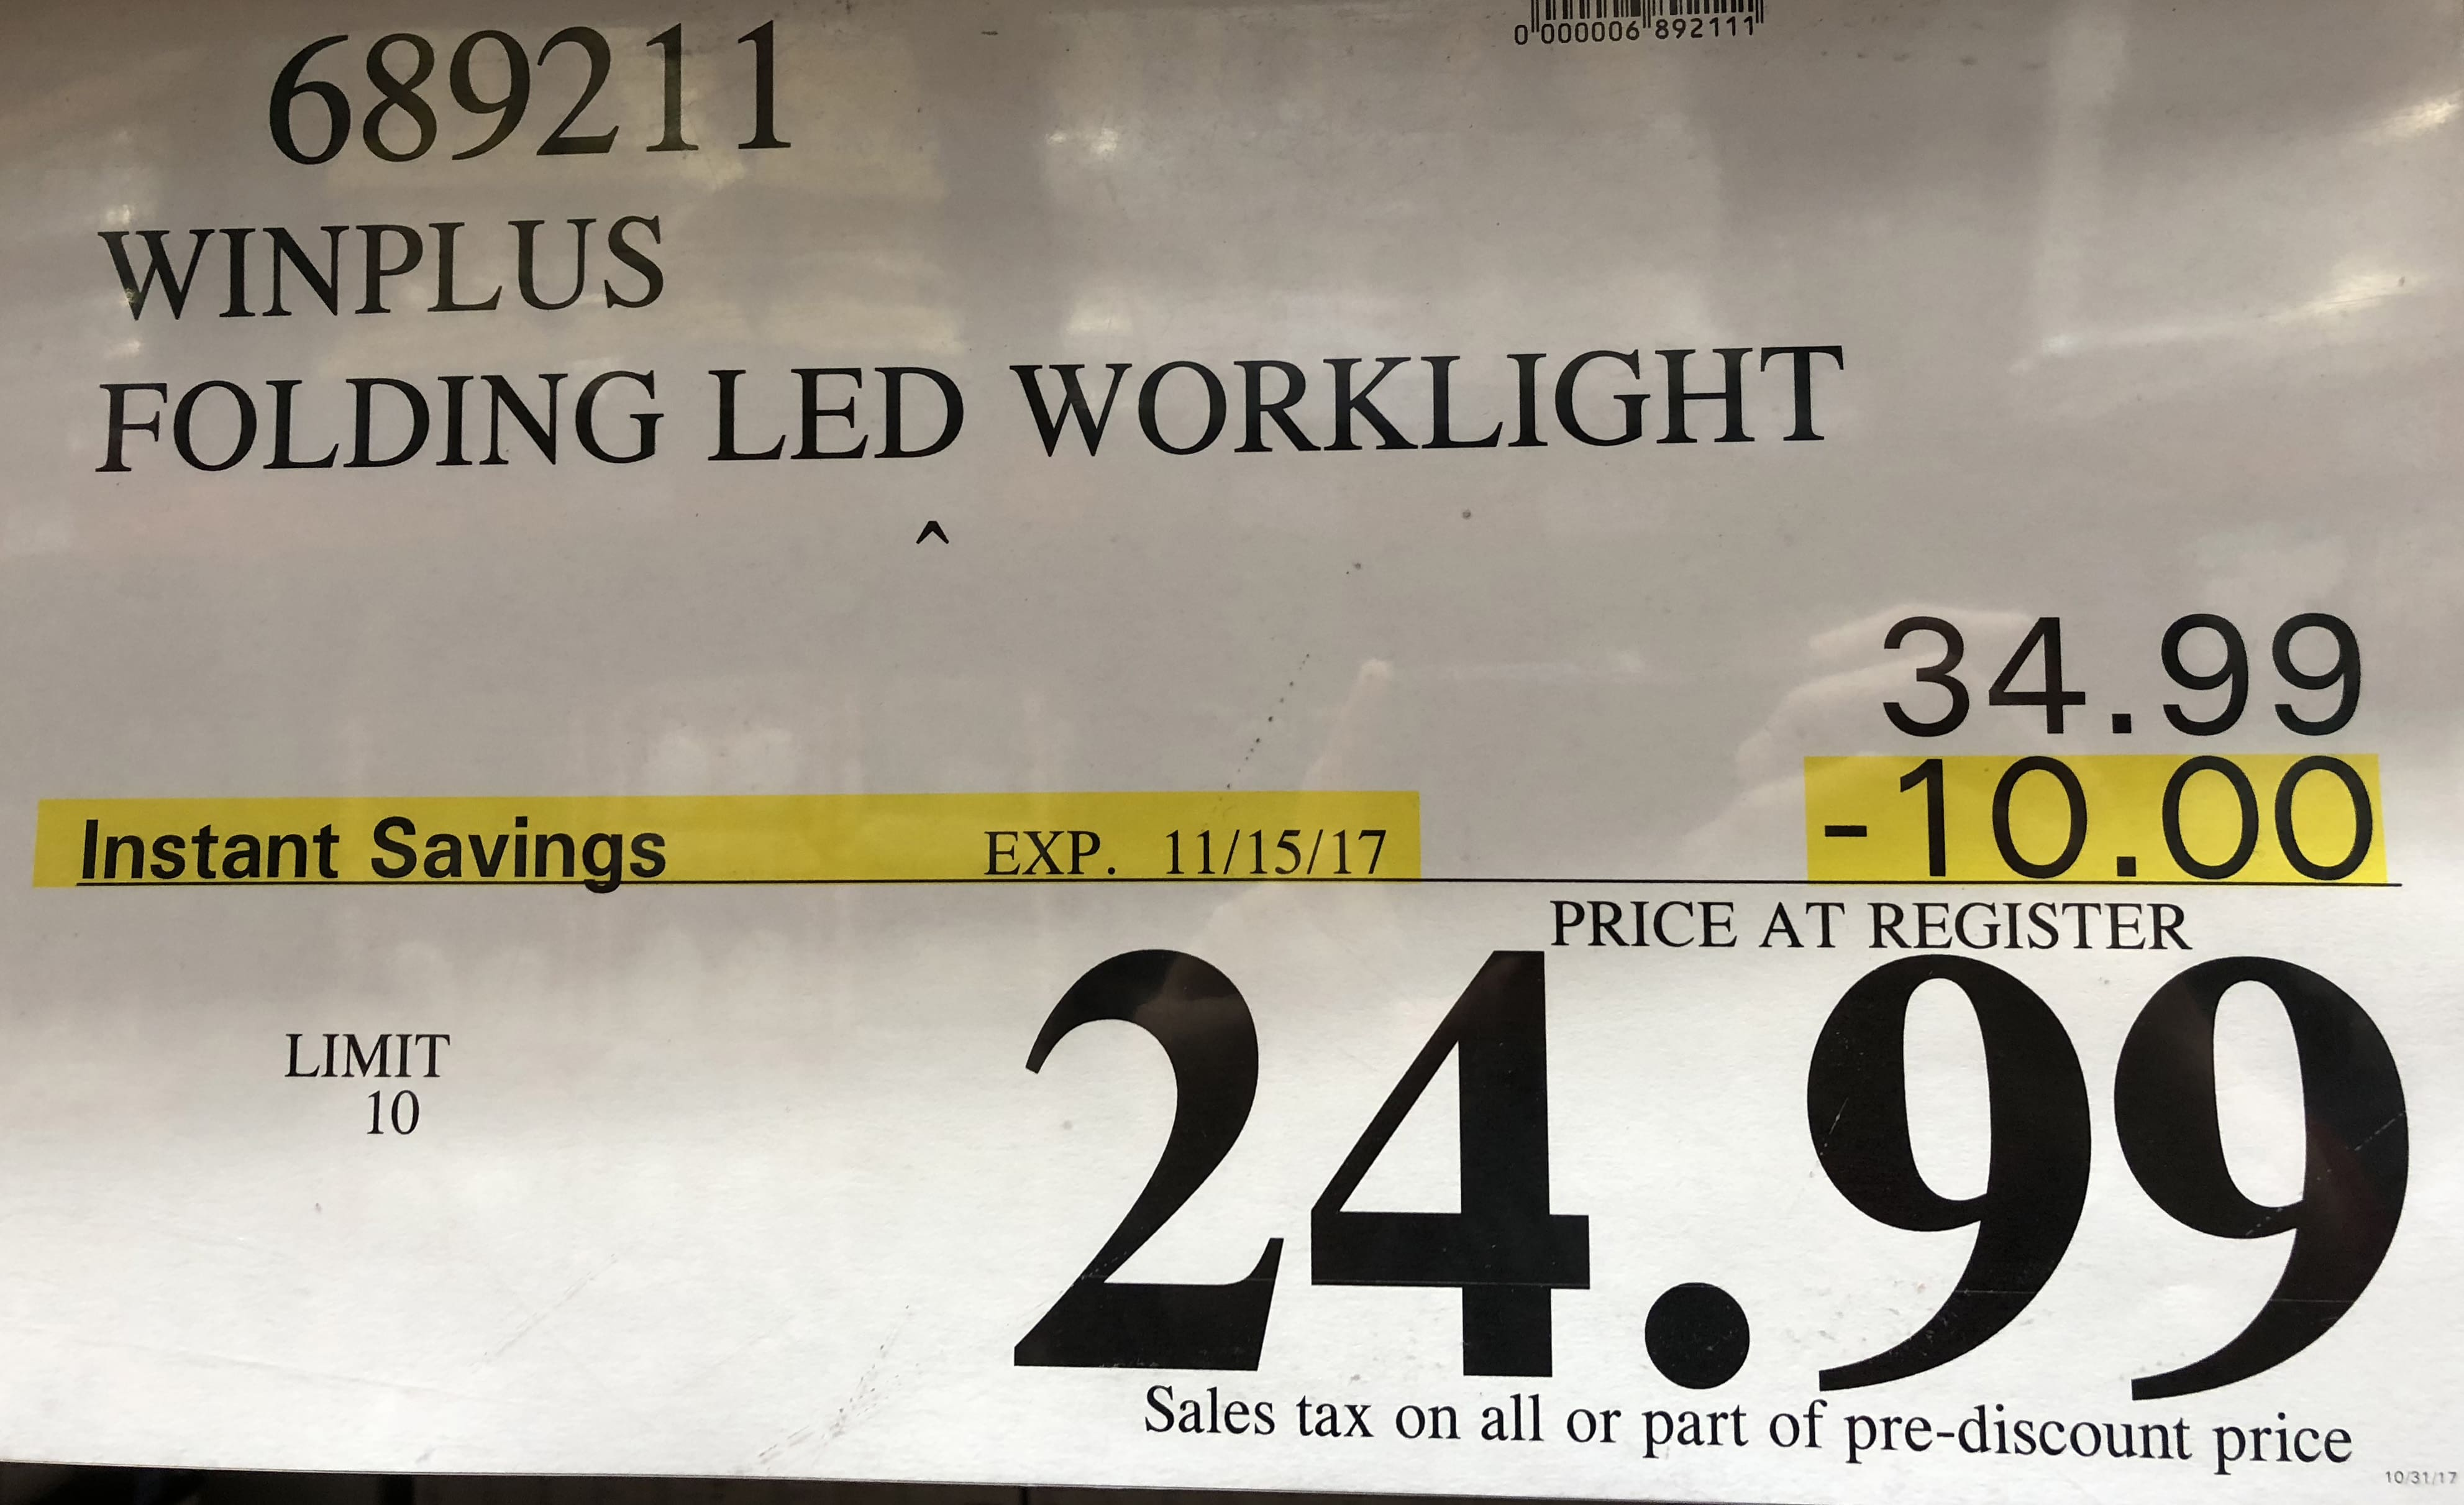 Winplus LED Folding Worklight @ Costco (in-store ONLY), $25 ($10 off)